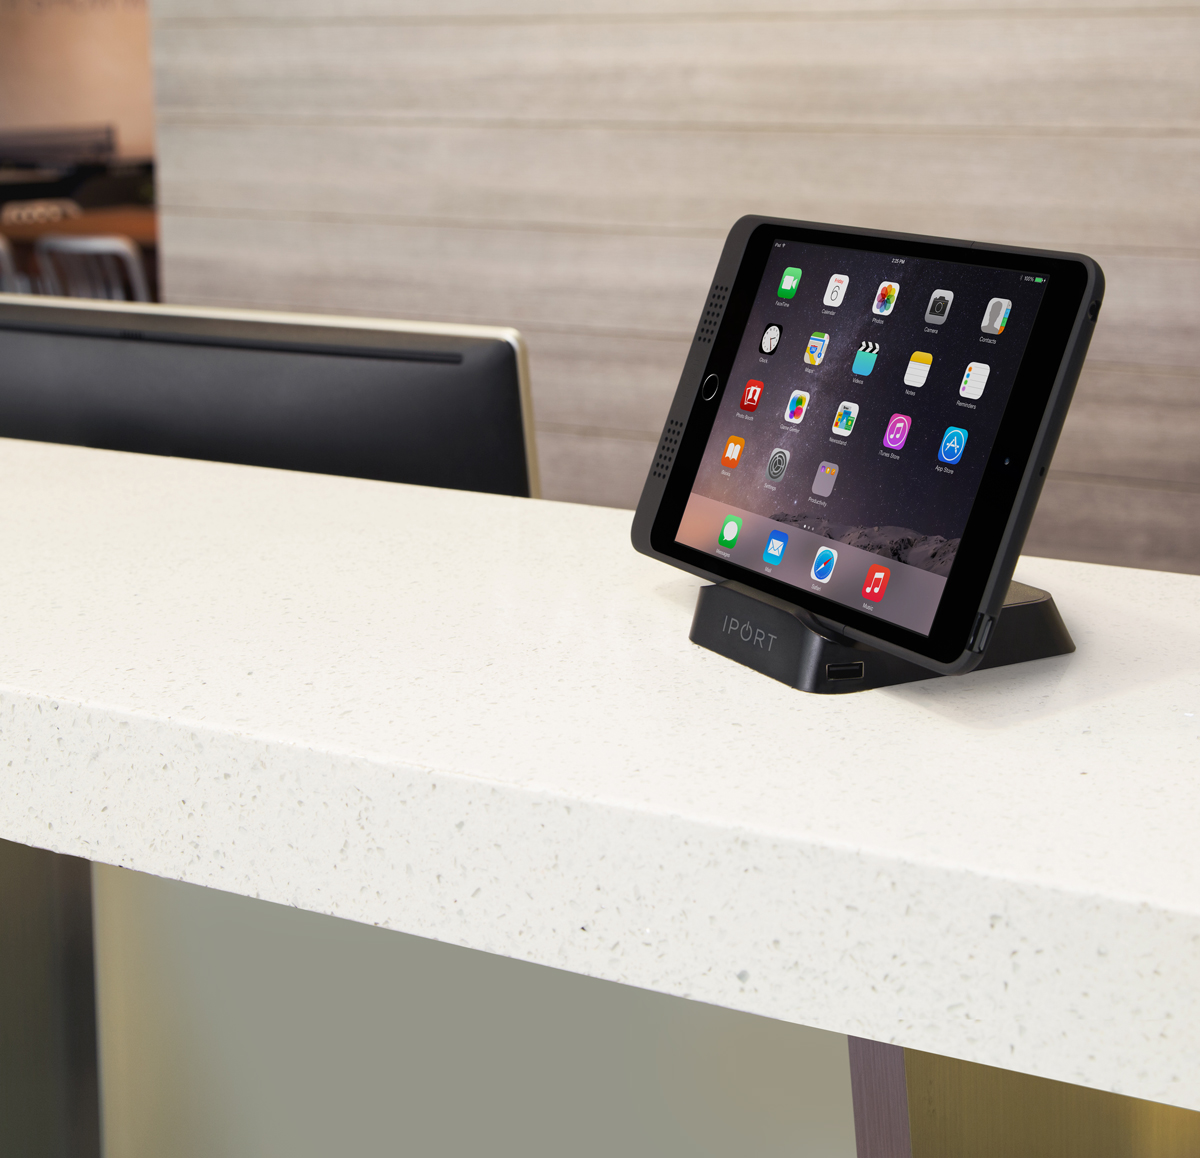 Black tablet docking station by IPORT on the front desk of a corporate office.